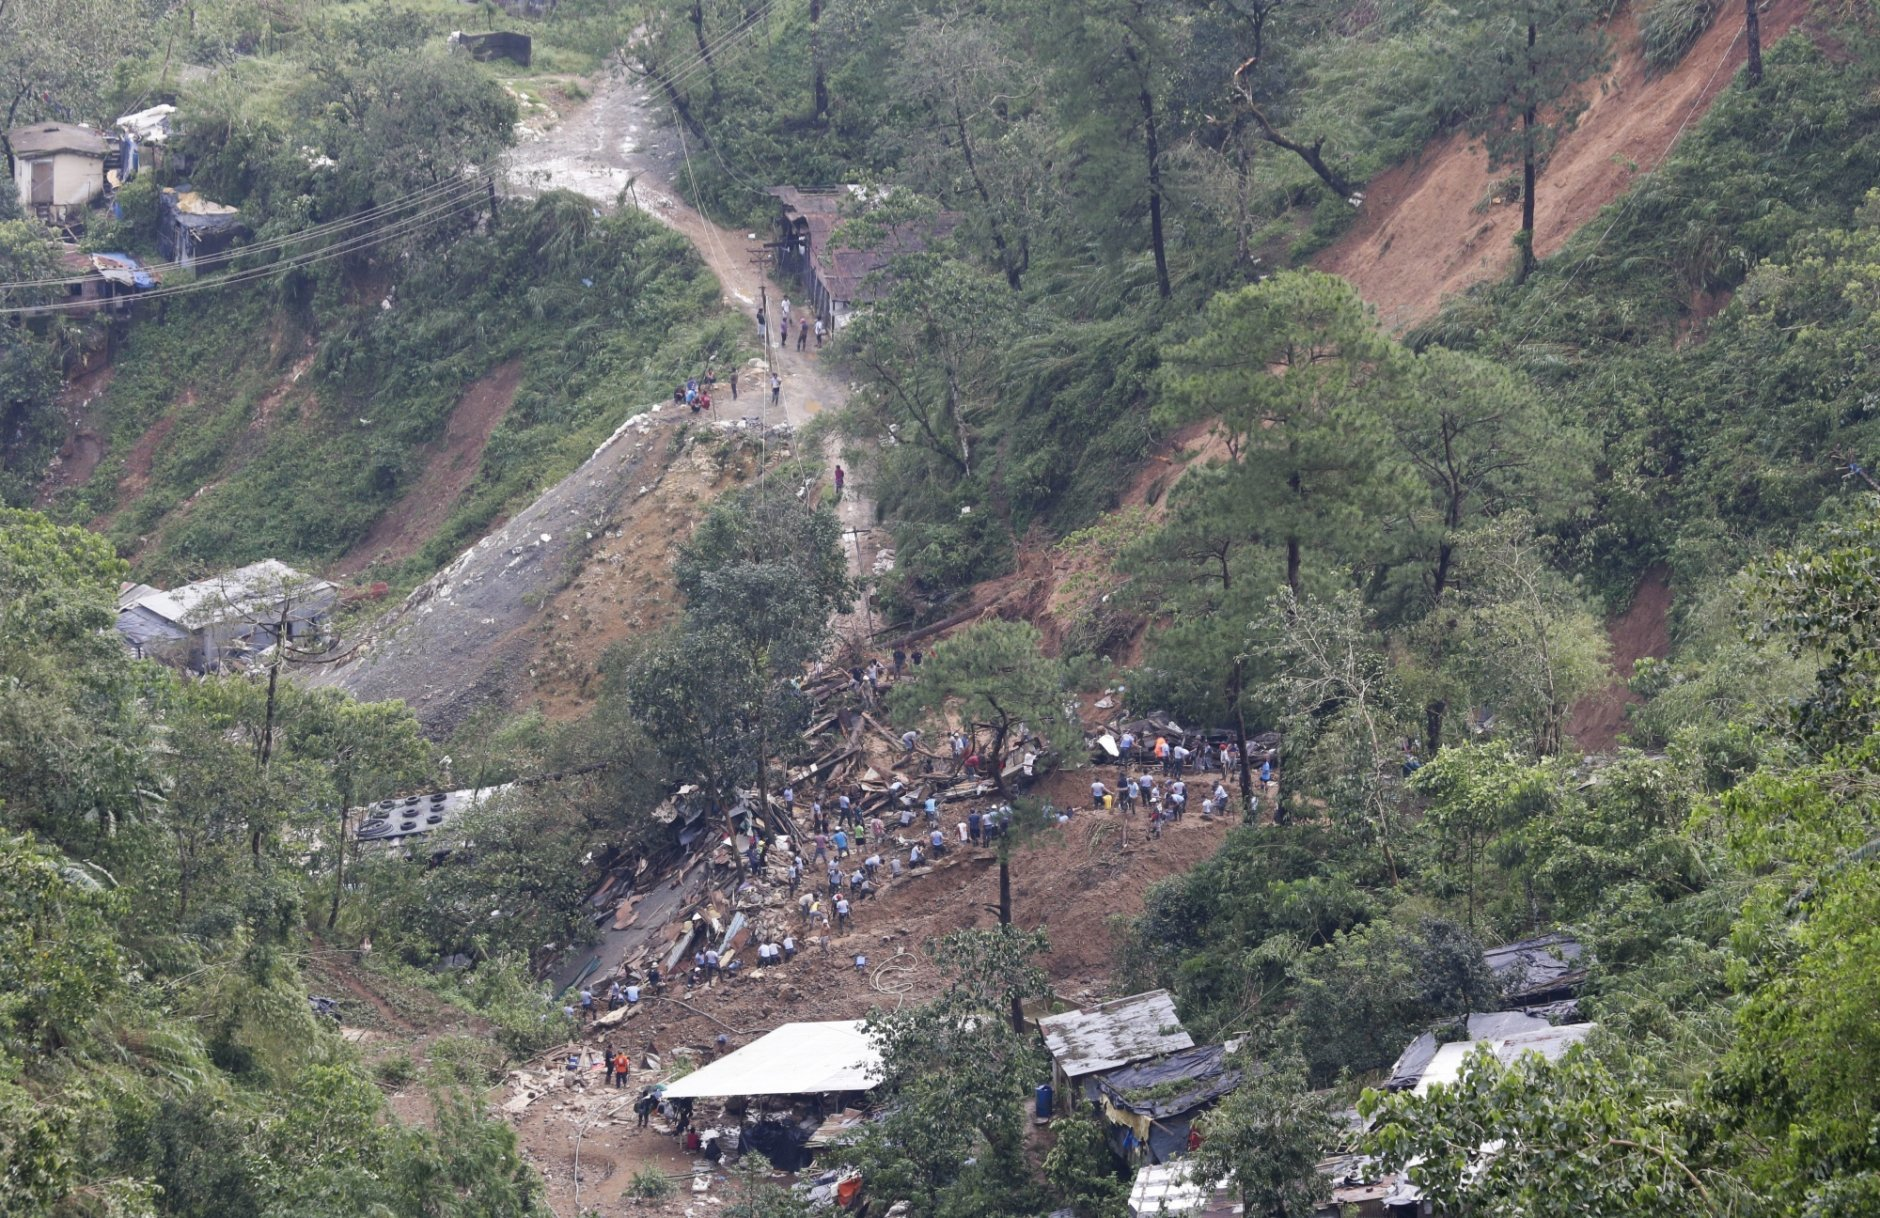 Rescuers dig on the site where victims were believed to have been buried by a landslide after Typhoon Mangkhut barreled across Itogon, Benguet province, northern Philippines, Monday, Sept. 17, 2018. Itogon Mayor Victorio Palangdan said that at the height of the typhoon's onslaught Saturday afternoon, dozens of people, mostly miners and their families, rushed into an old three-story building in the village of Ucab. The building, a former mining bunkhouse that had been transformed into a chapel, was obliterated when part of a mountain slope collapsed. (AP Photo/Aaron Favila)